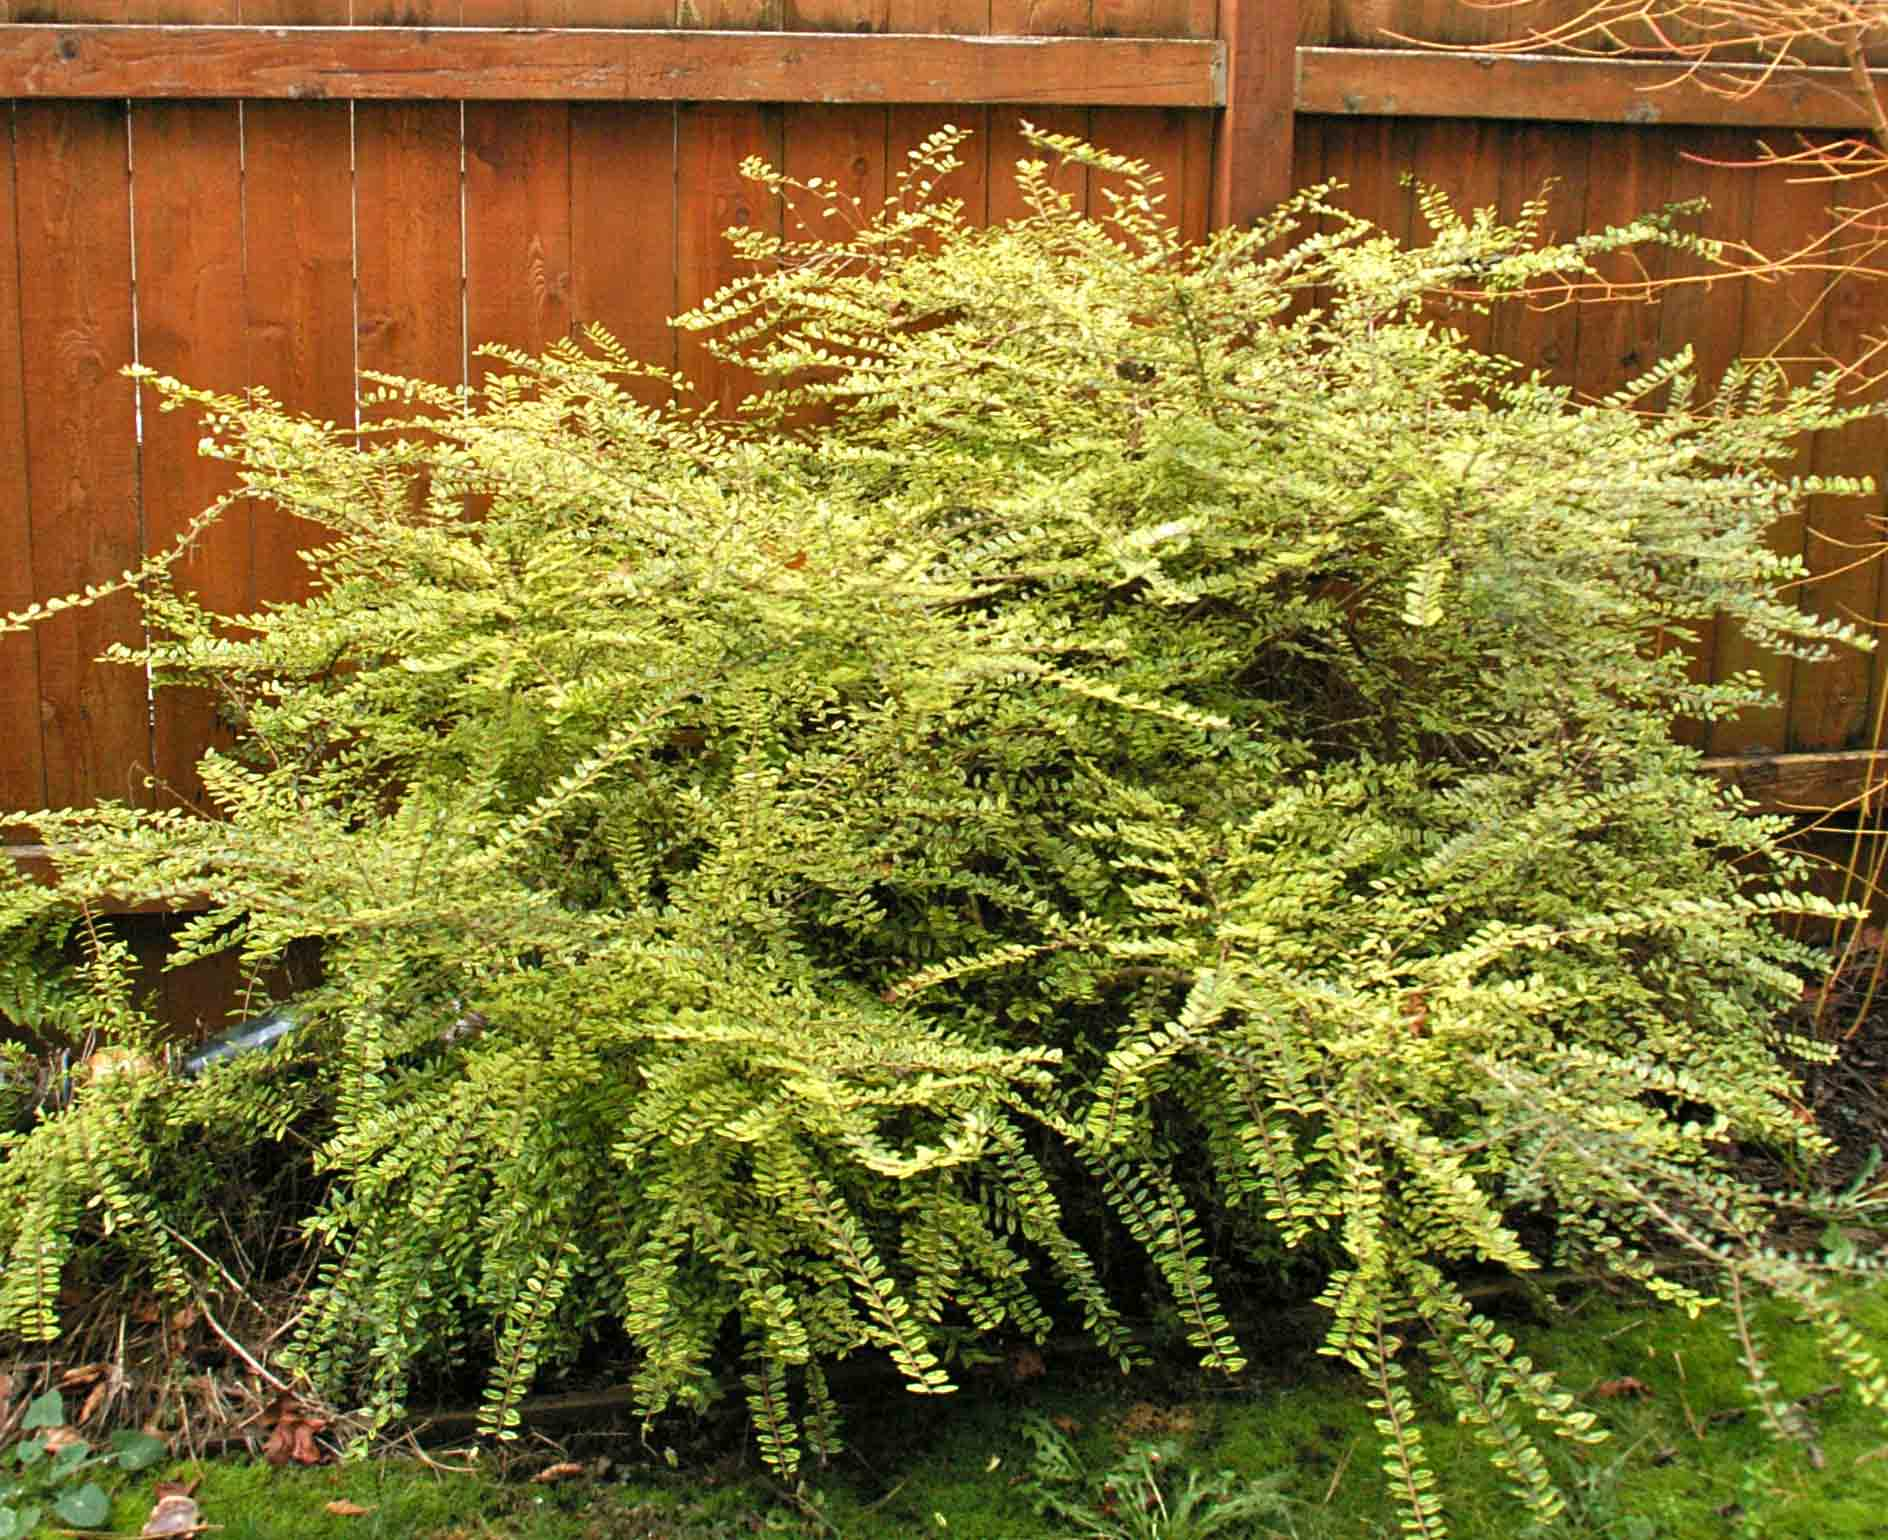 Landscaping With Honeysuckle : Image from http arboretumfriends images plantsale lonicera baggesens